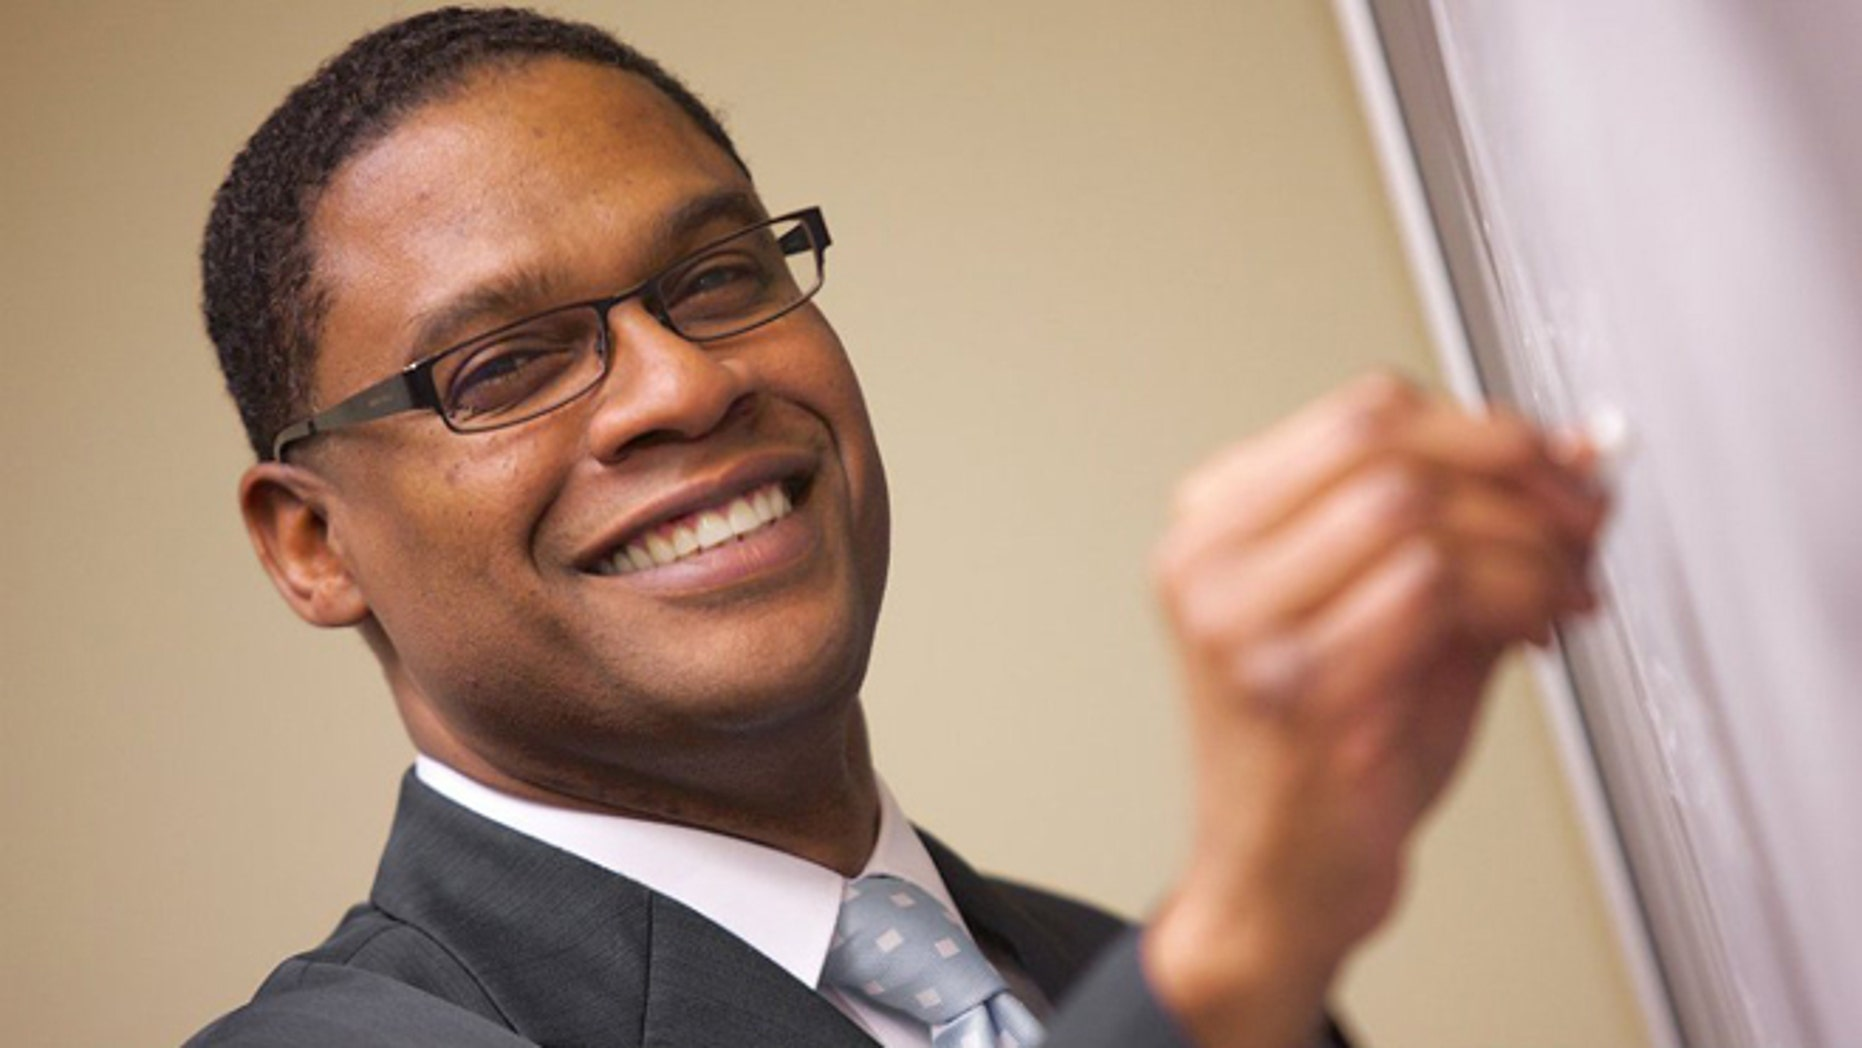 Syracuse professor Mark Muhammad was recently elected to the city's school board and also happens to be the local representative for the Nation of Islam.